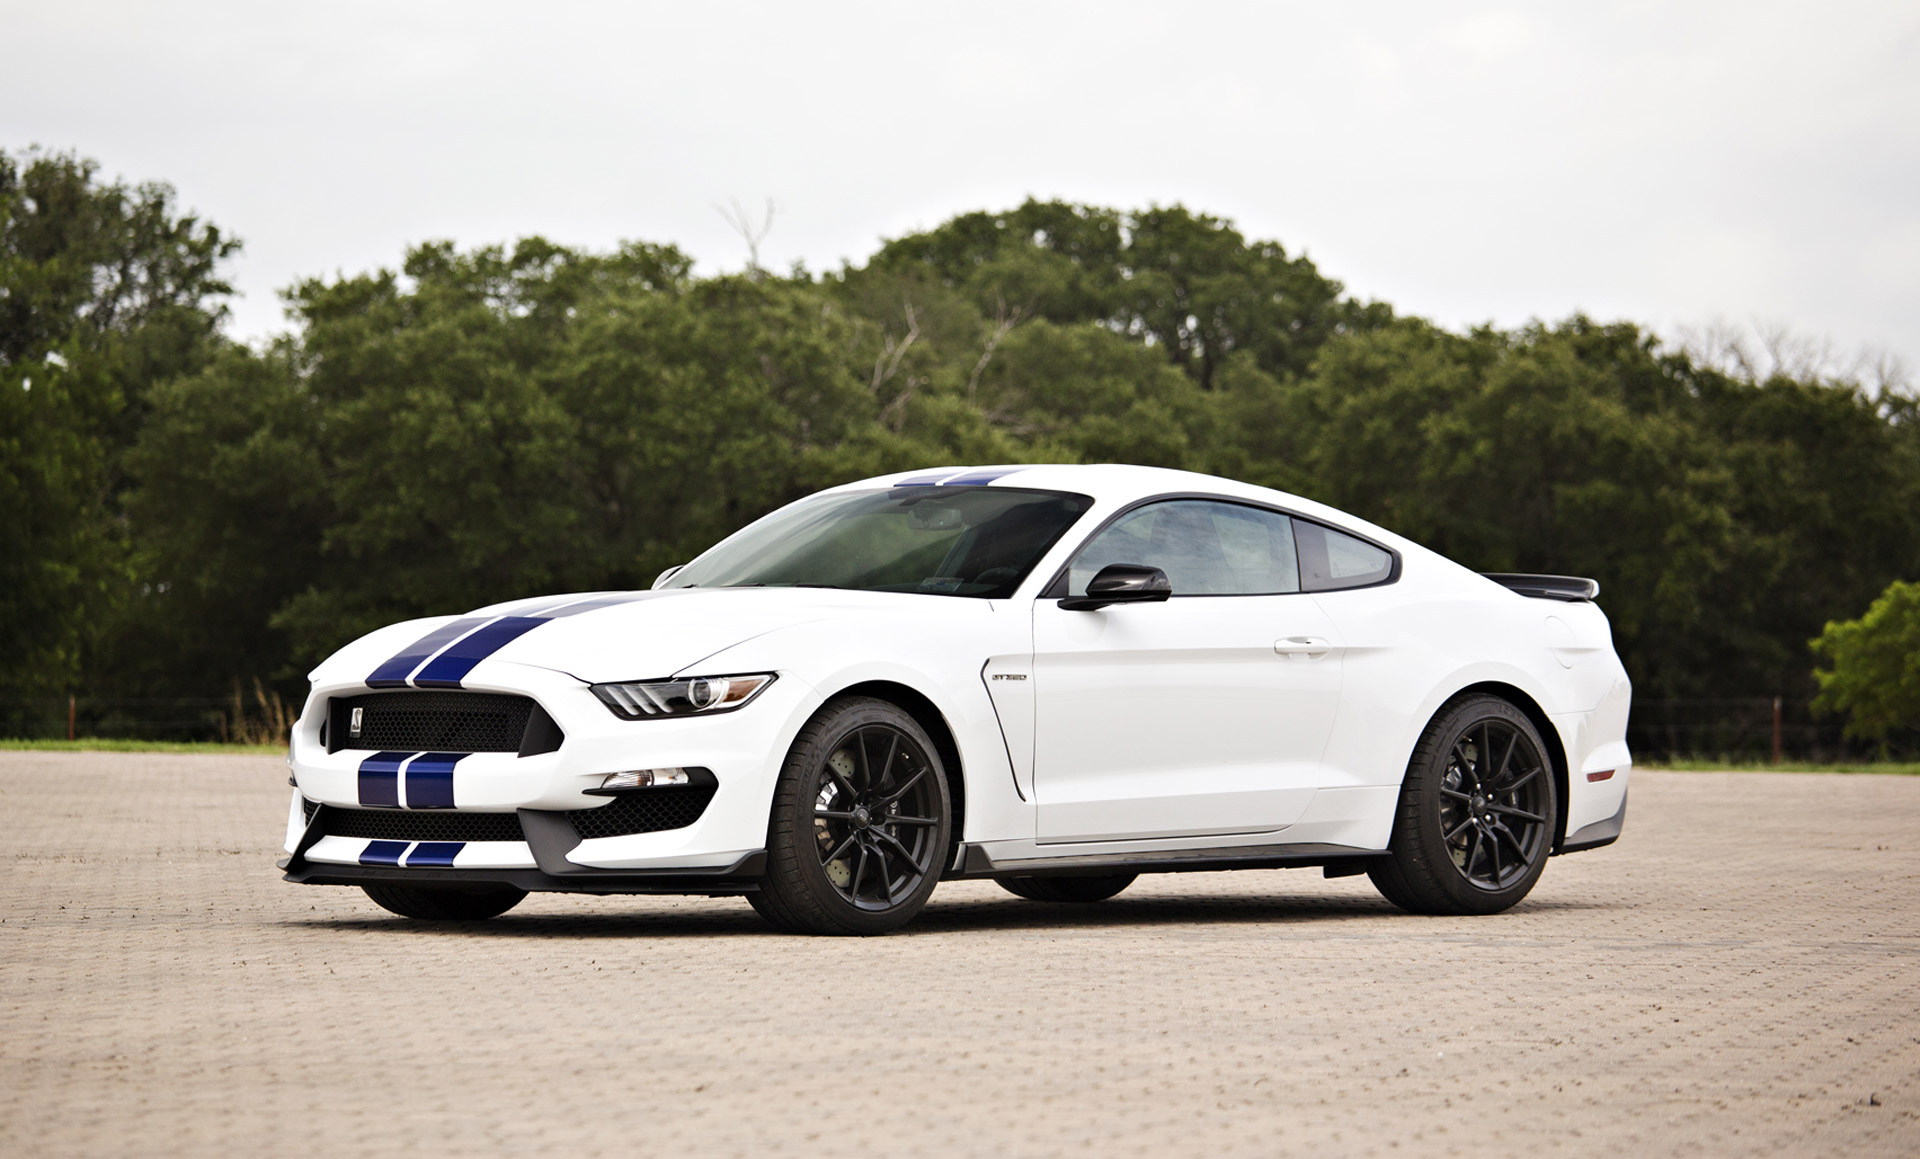 ford mustang shelby gt350 signed by george w bush helps raise 885k for charity. Black Bedroom Furniture Sets. Home Design Ideas